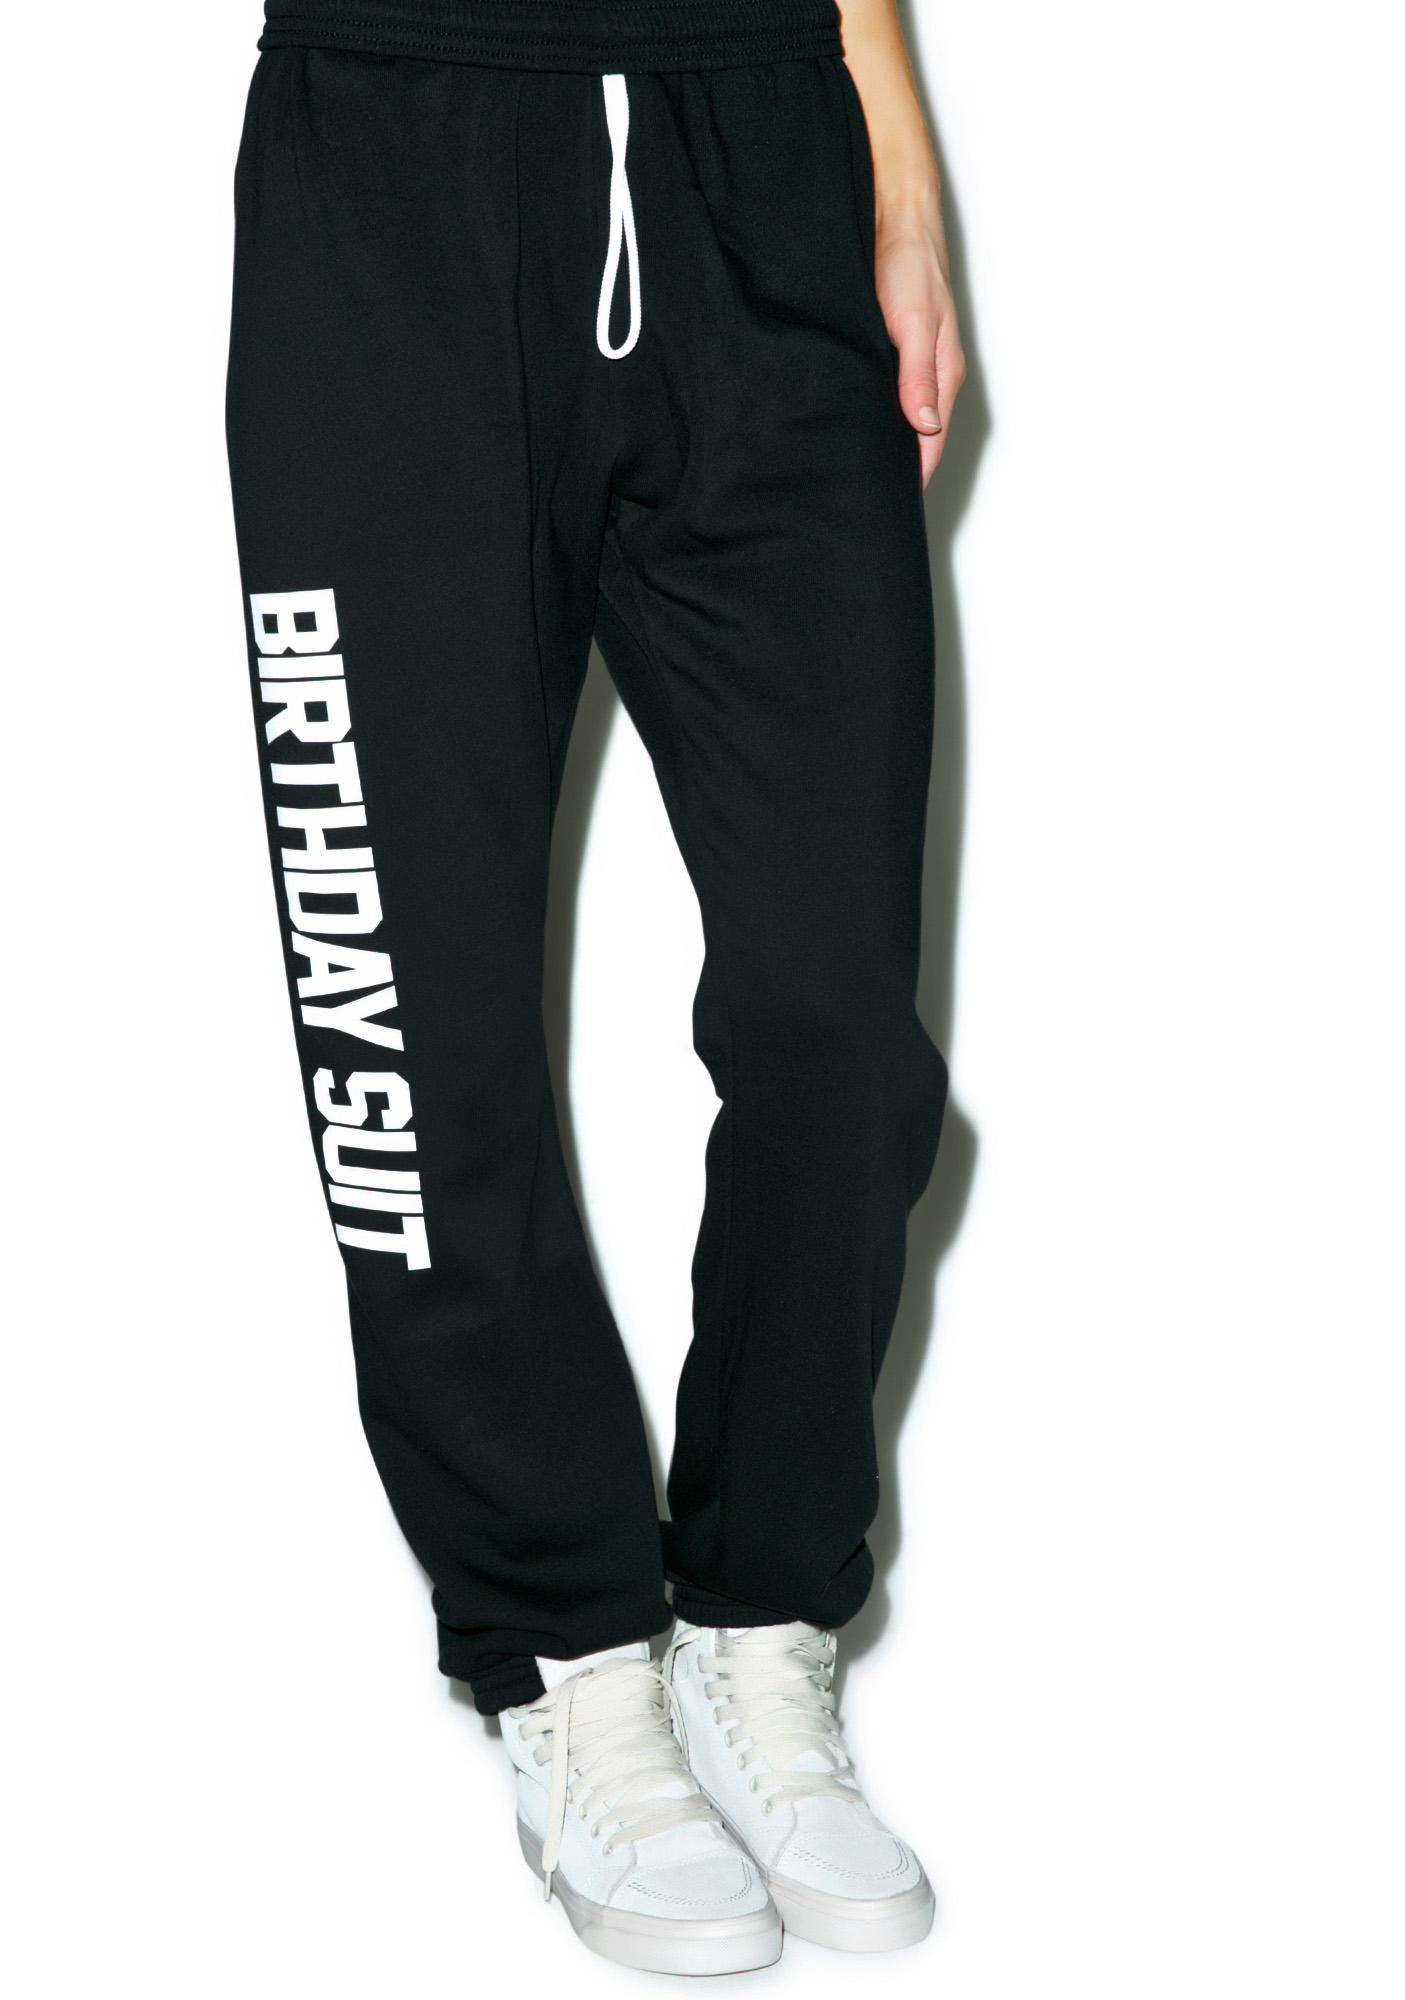 Private Party Birthday Suit Sweatpants